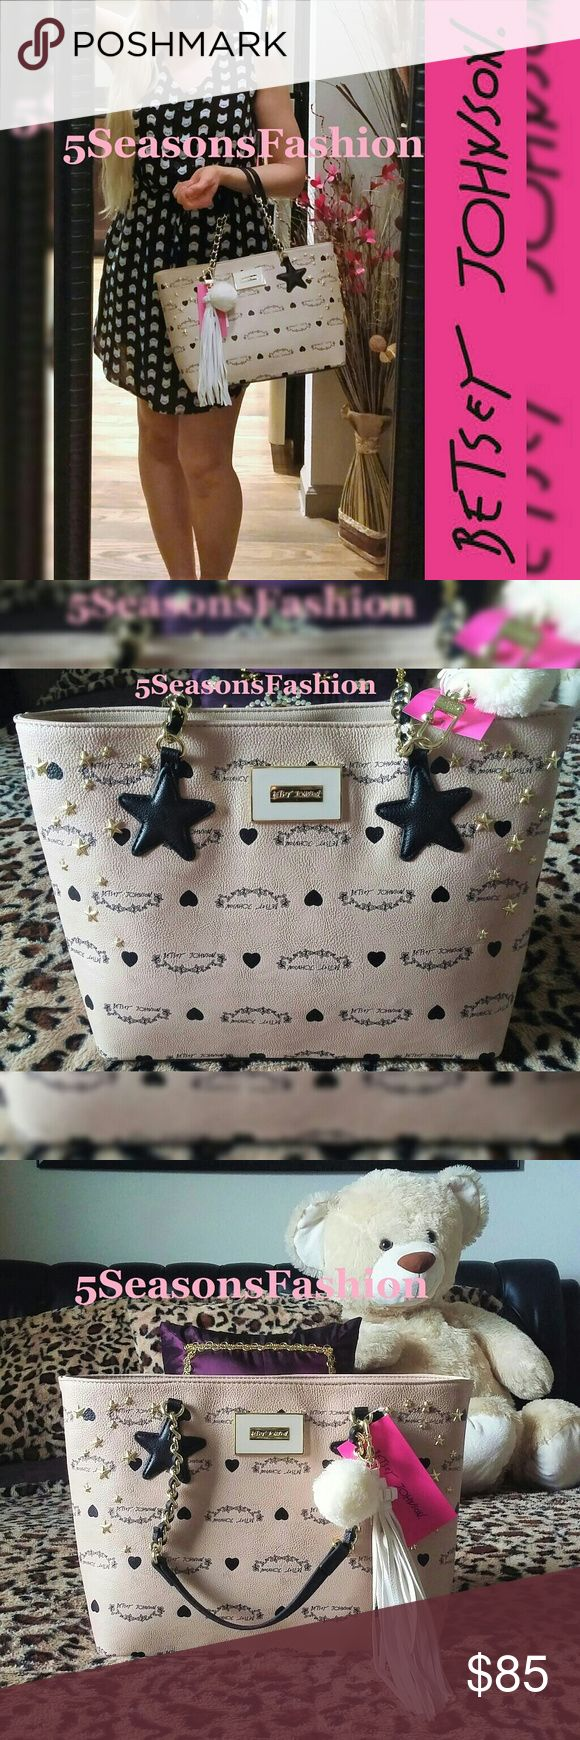 """💕BETSEY JOHNSON Tan Signature Logo Bag Star Studs BRAND NEW WITH TAGS! Beautifil tan handbag from Betsey Johnson. Features back signature logo detail with bkack and gold tobe studded stars ⭐💕💋 FAUX LEATHER. Medium size bag. Measures 14""""Lx9.5""""Hx4.5""""D. Chic and unique statement piece 😻 Betsey Johnson Bags Satchels"""